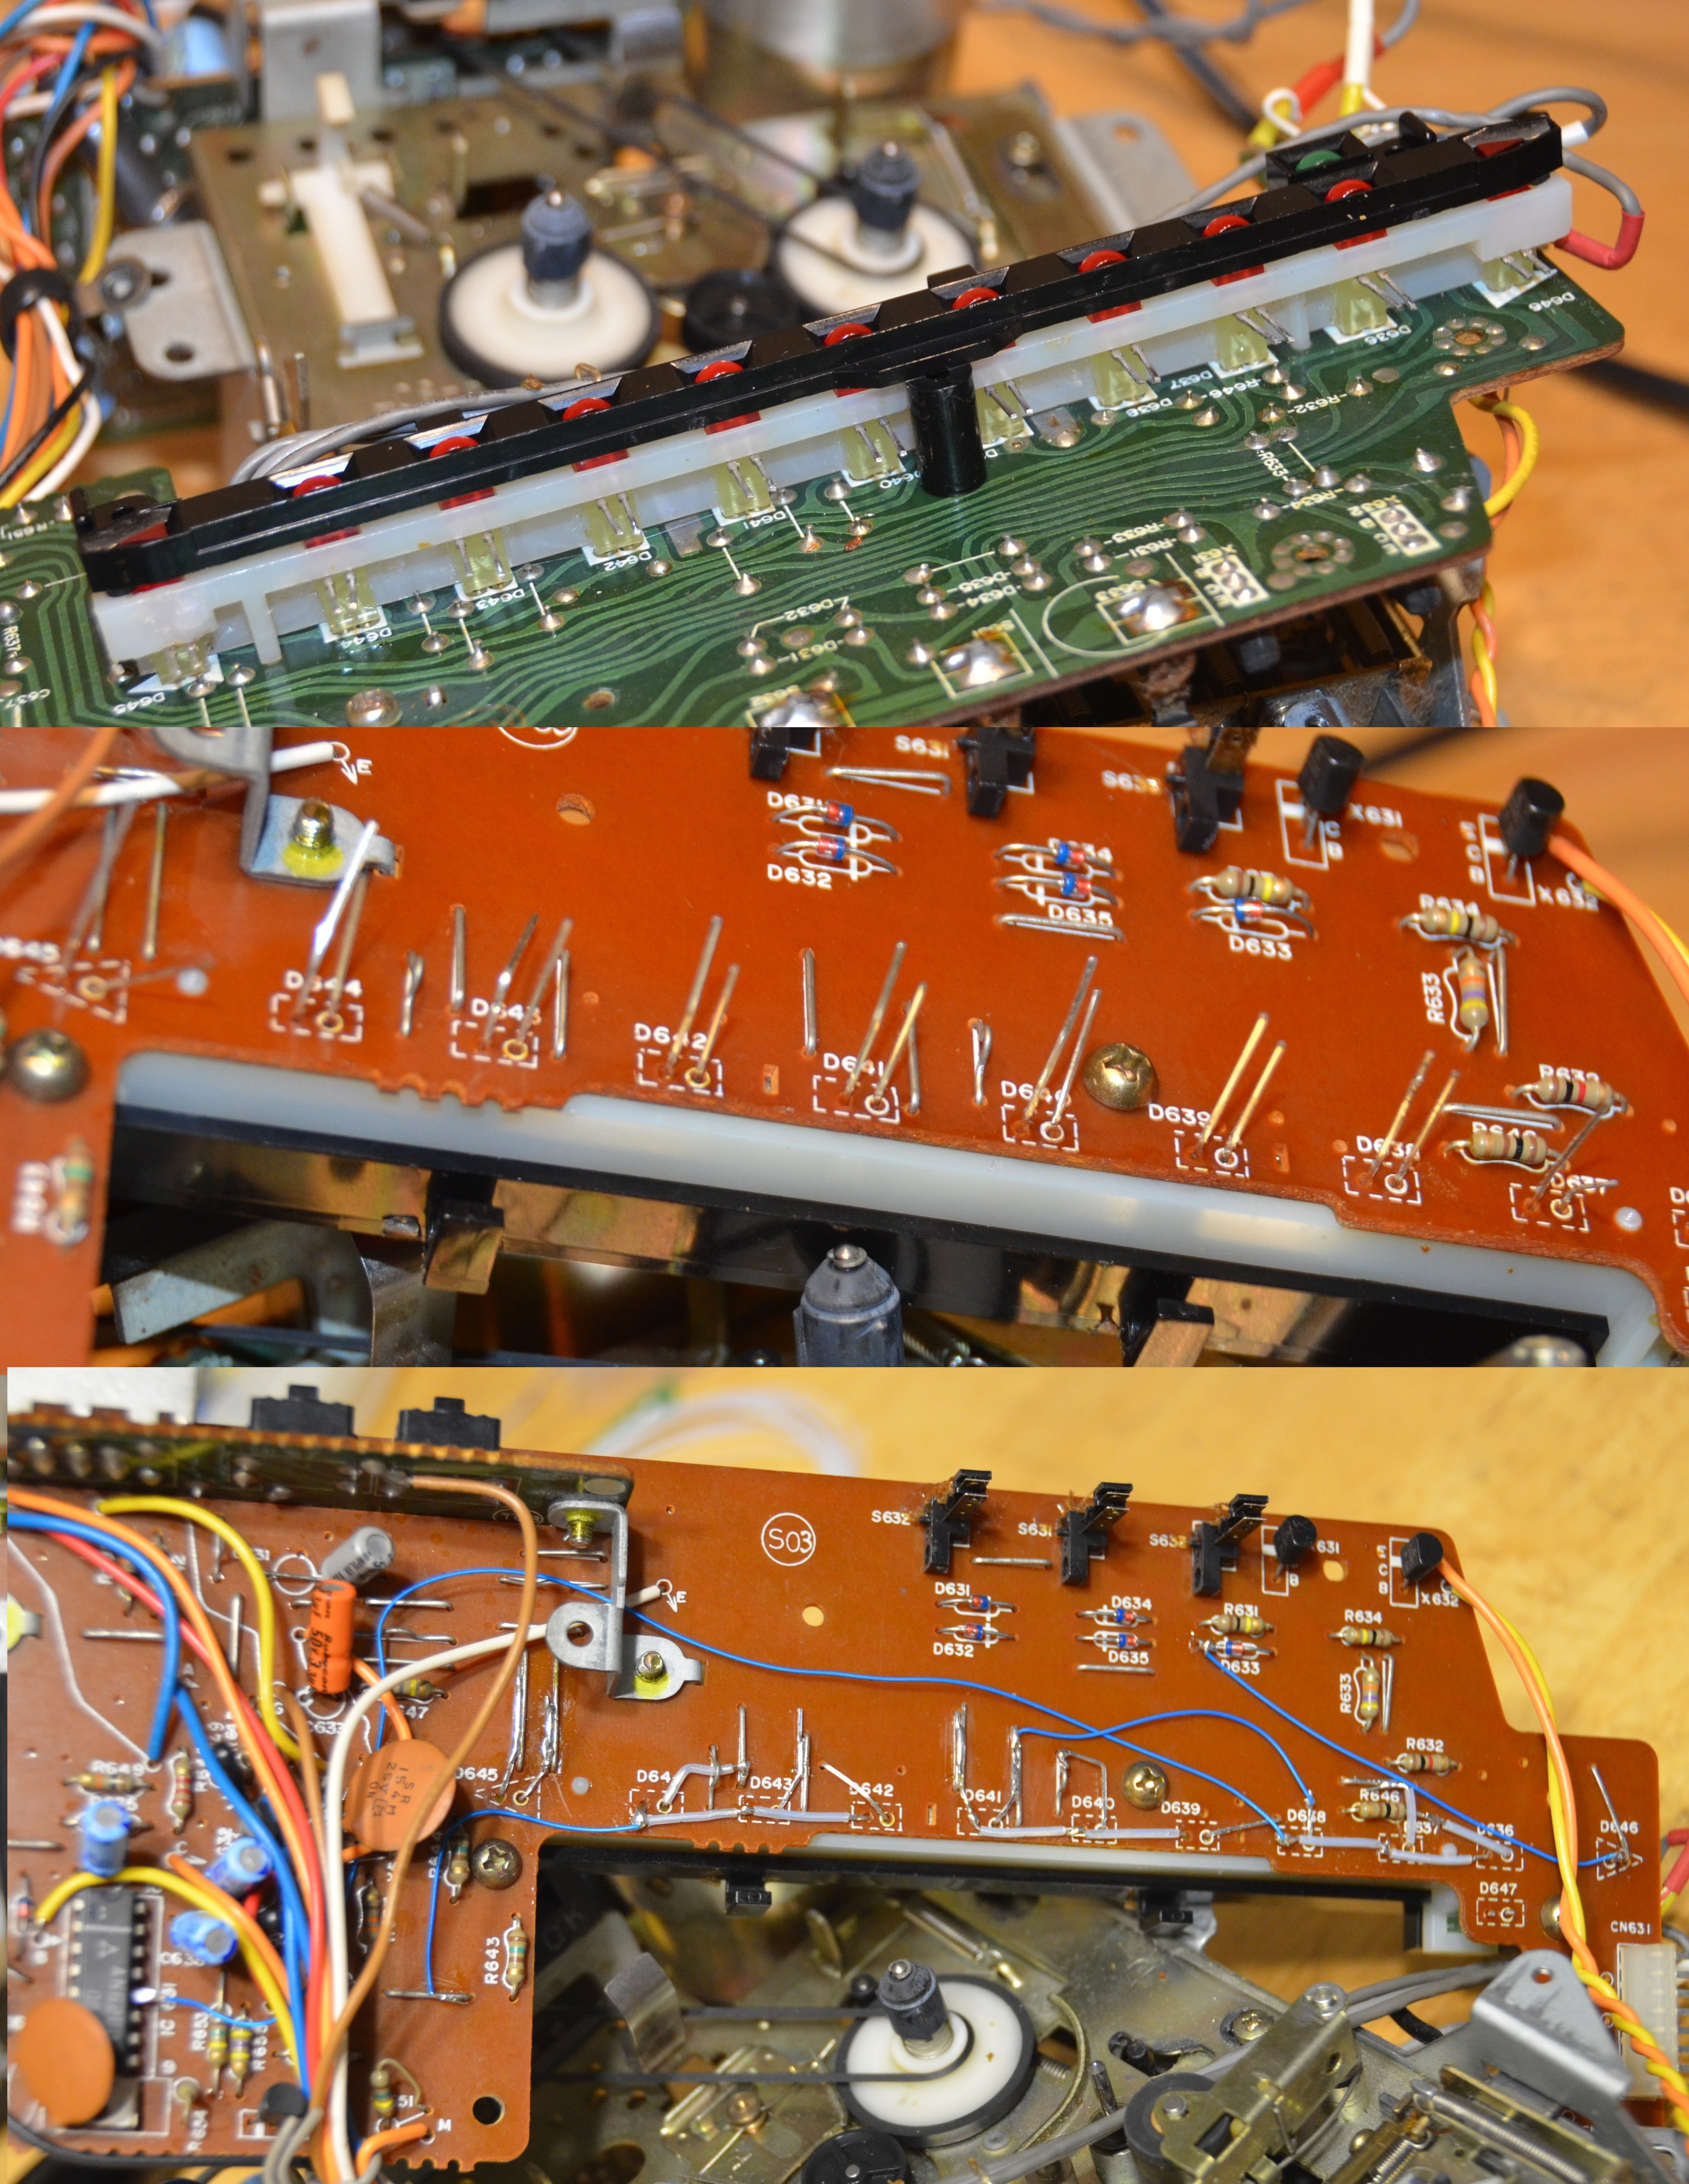 M70 Led Meter Mod Restorations Customizations Boomboxery Lm3915 Vu Not Working Properly Electrical Engineering An Error Occurred